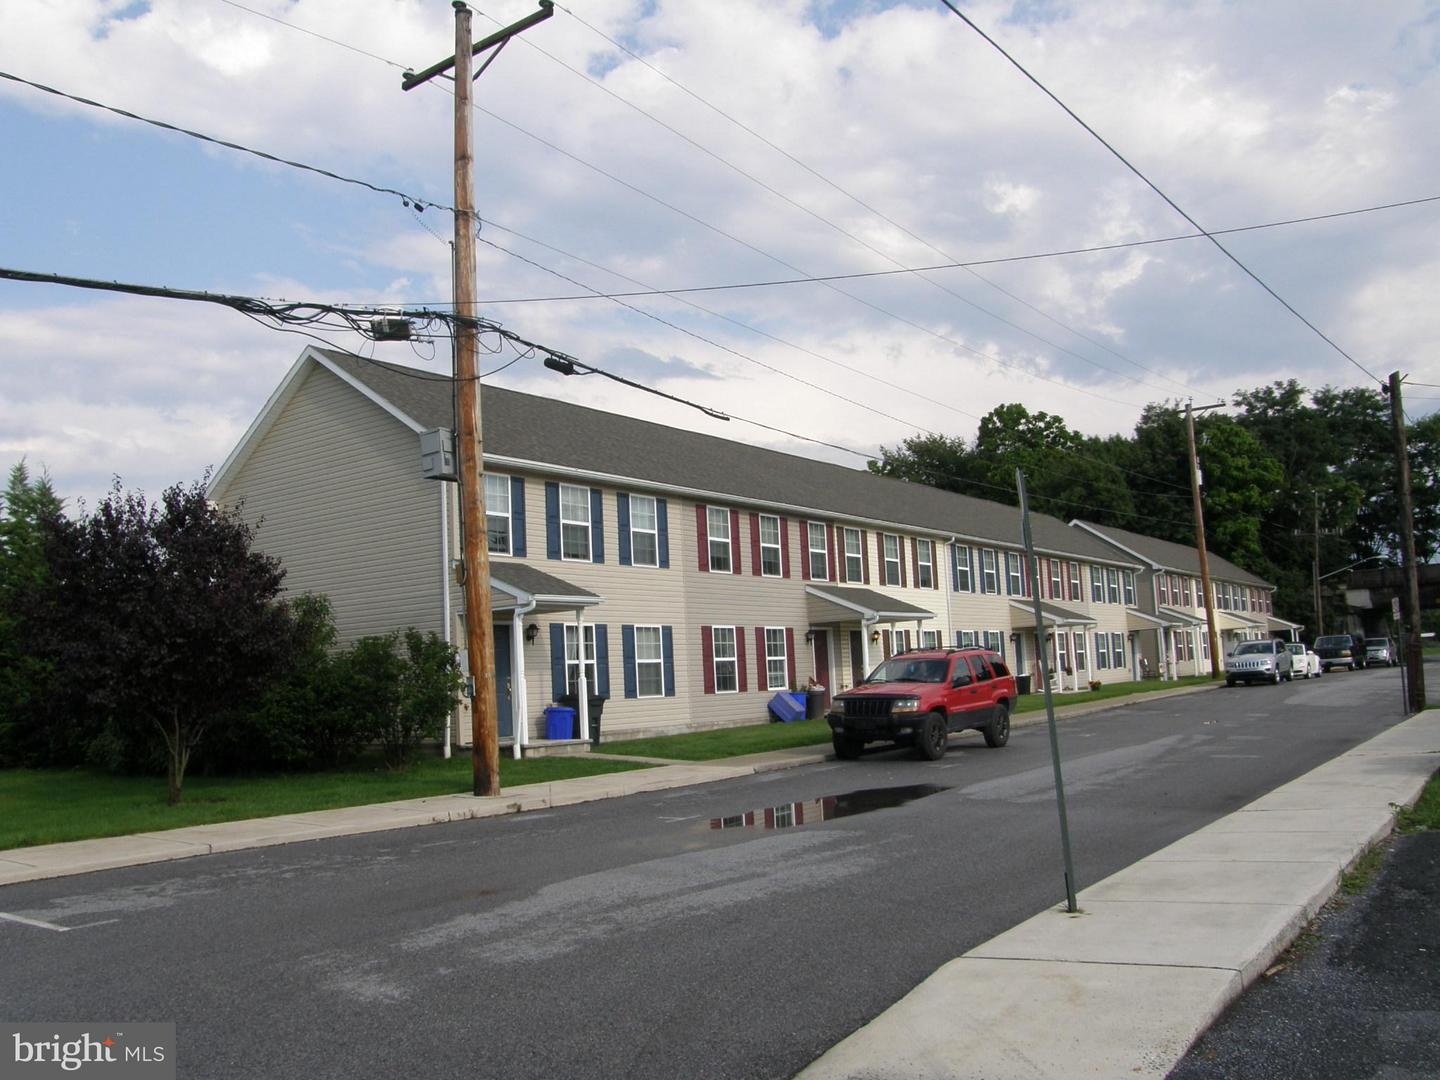 Other Residential for Sale at 121-147 Seneca - Earl St S Shippensburg, Pennsylvania 17257 United States